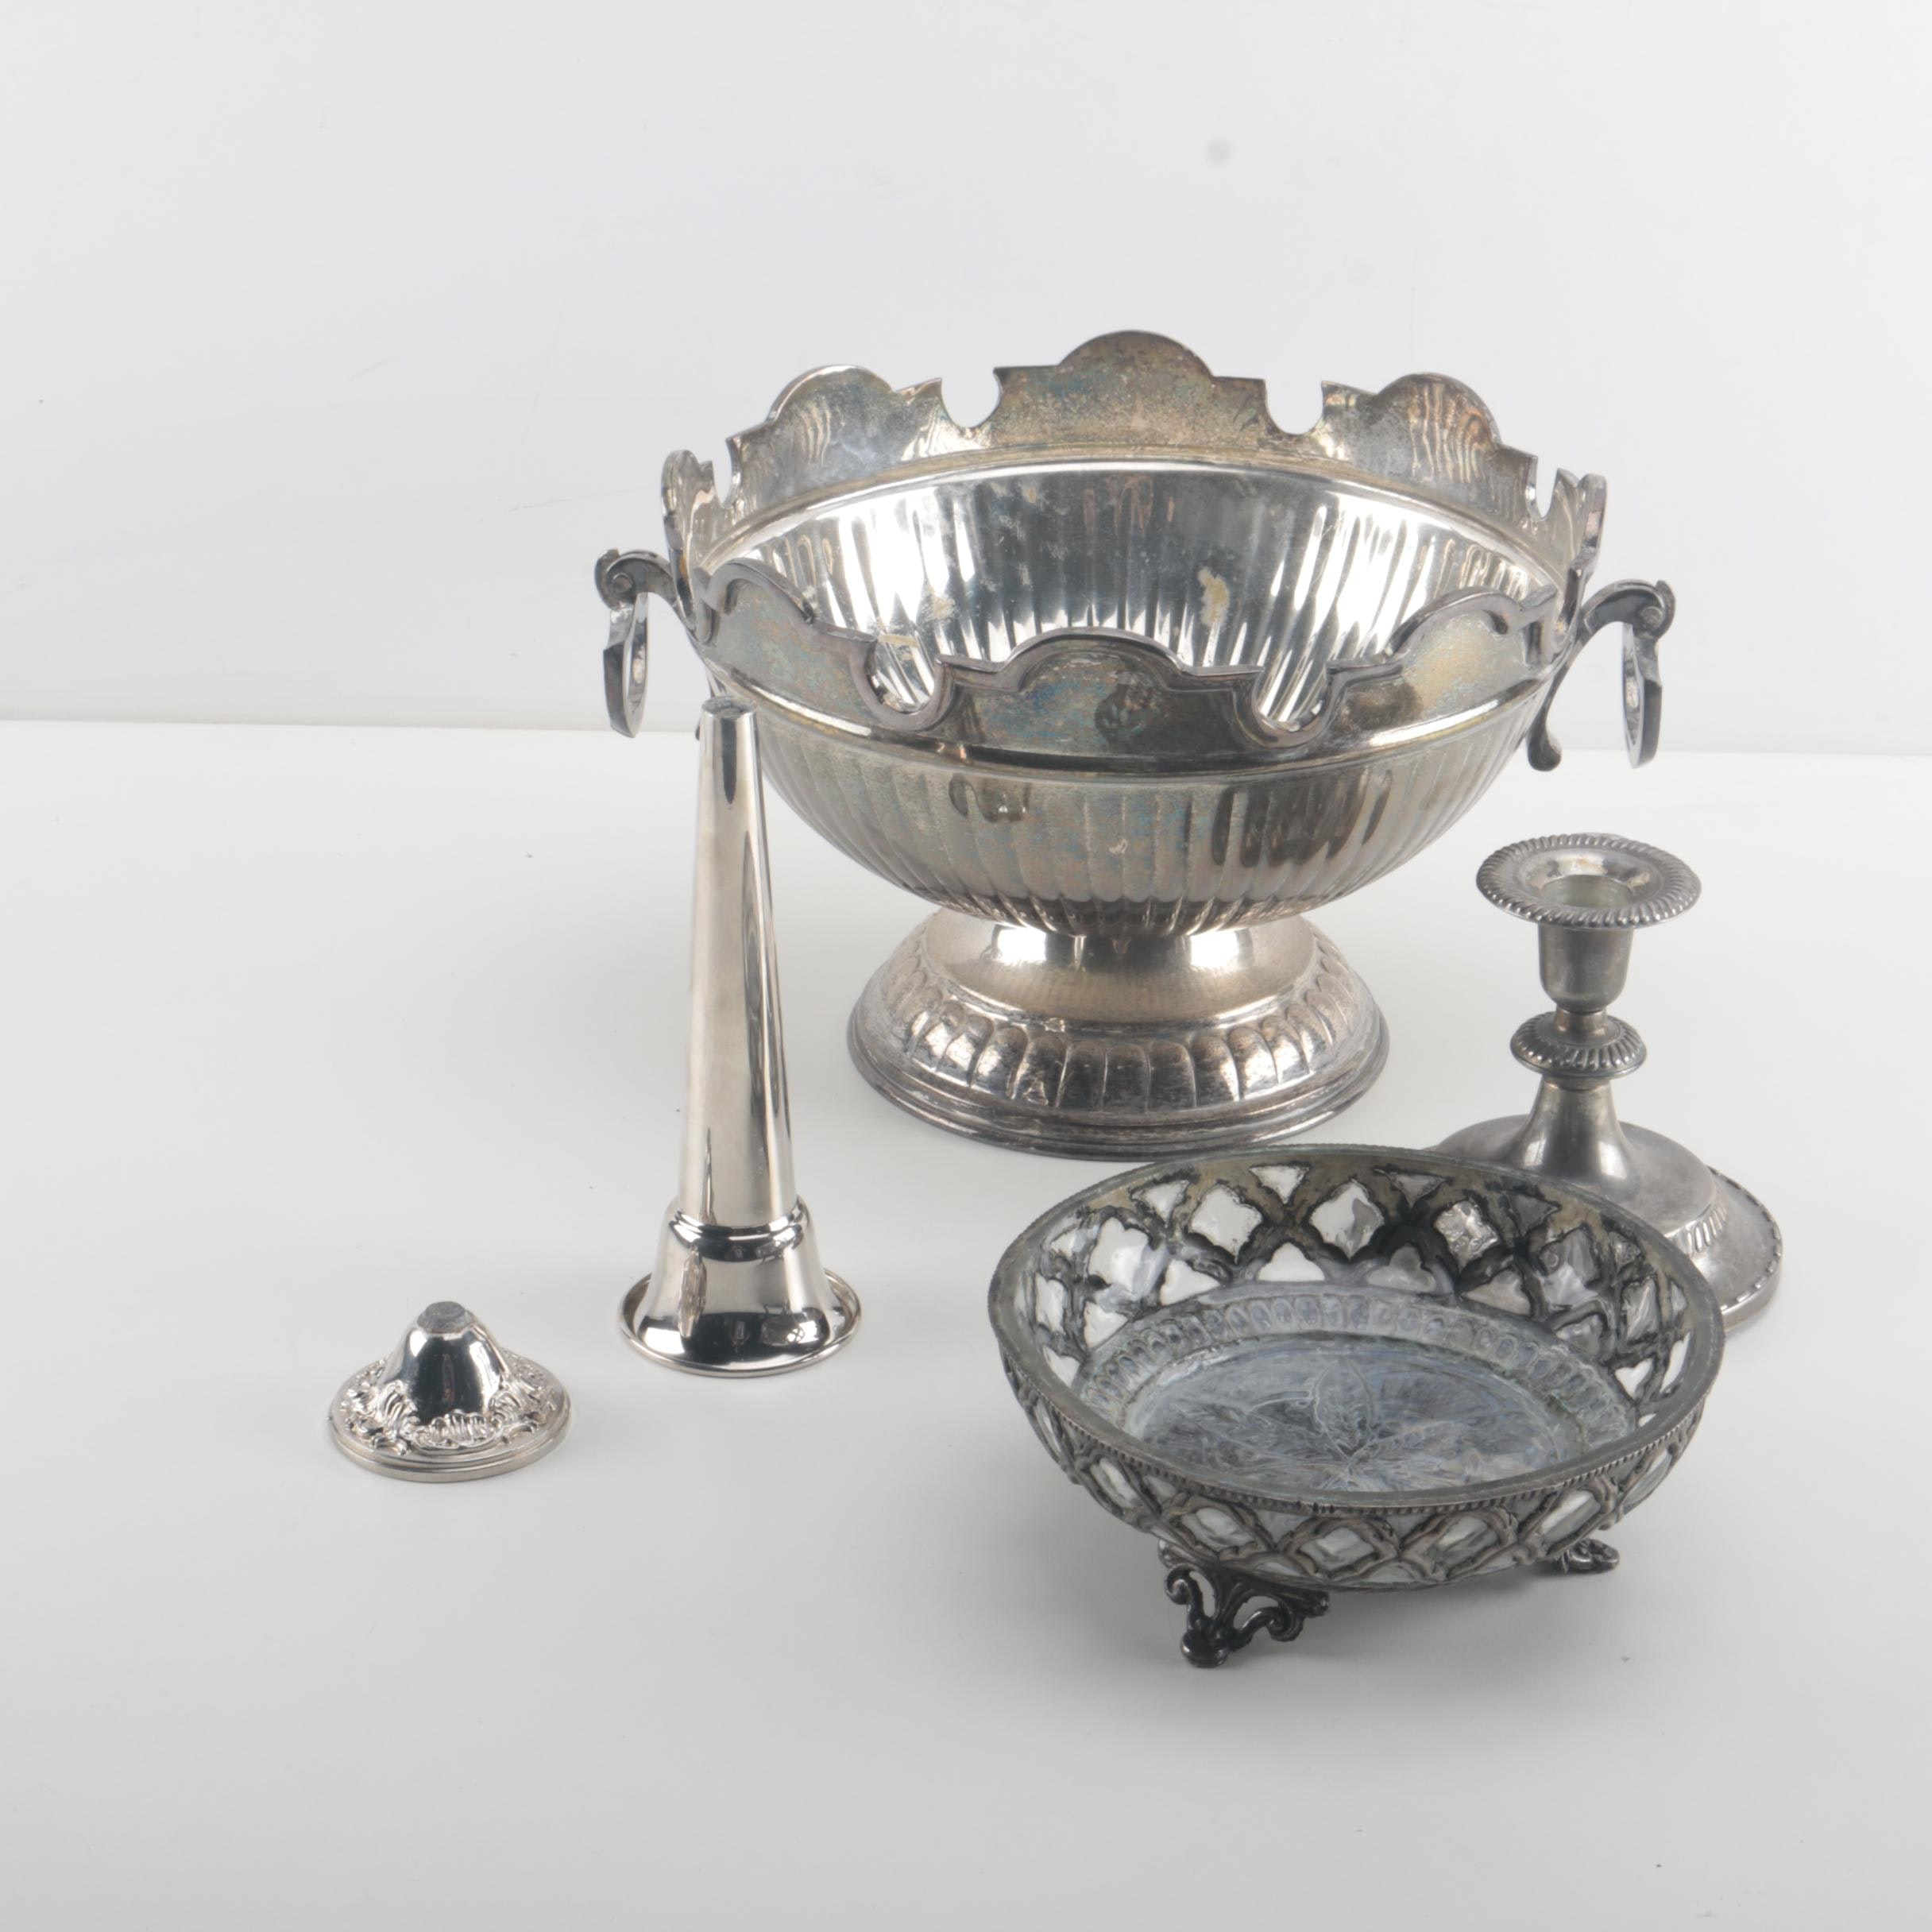 Plated Silver Bowls and a Candlestick